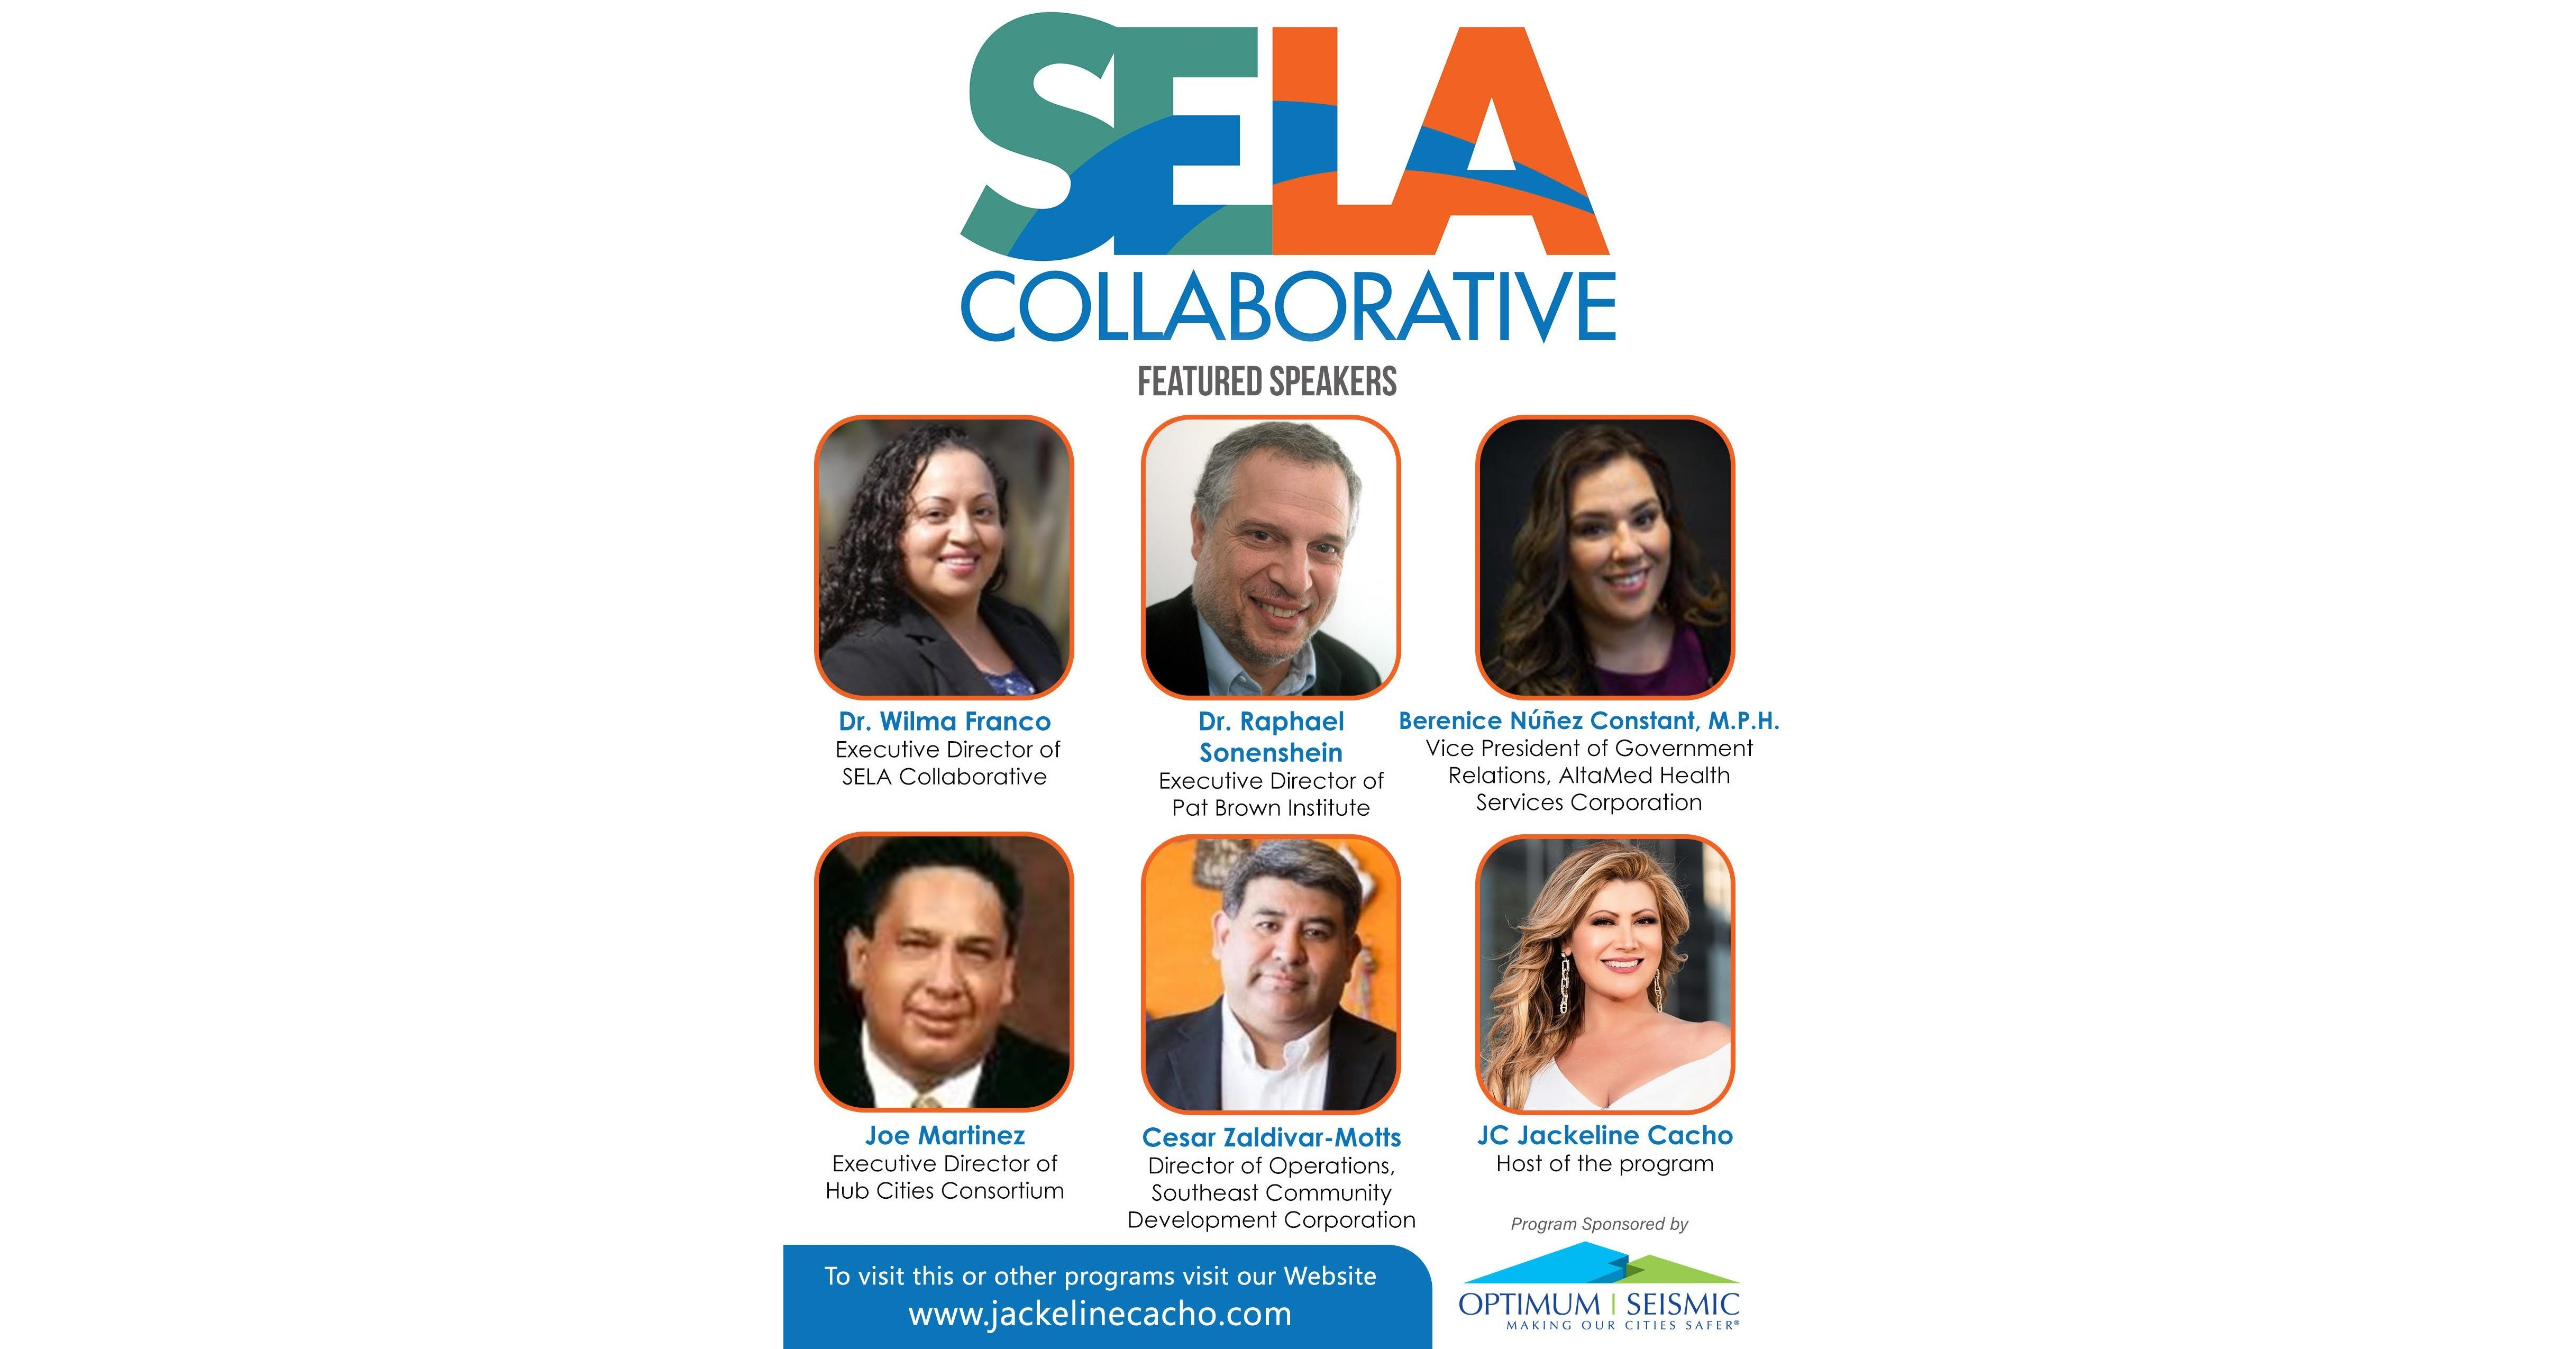 https www prnewswire com news releases optimum seismic sponsors southeast la collaborative to discuss covid 19 impacts strengthening area non profits increasing communitys voice on facebook live aug 31 301120447 html